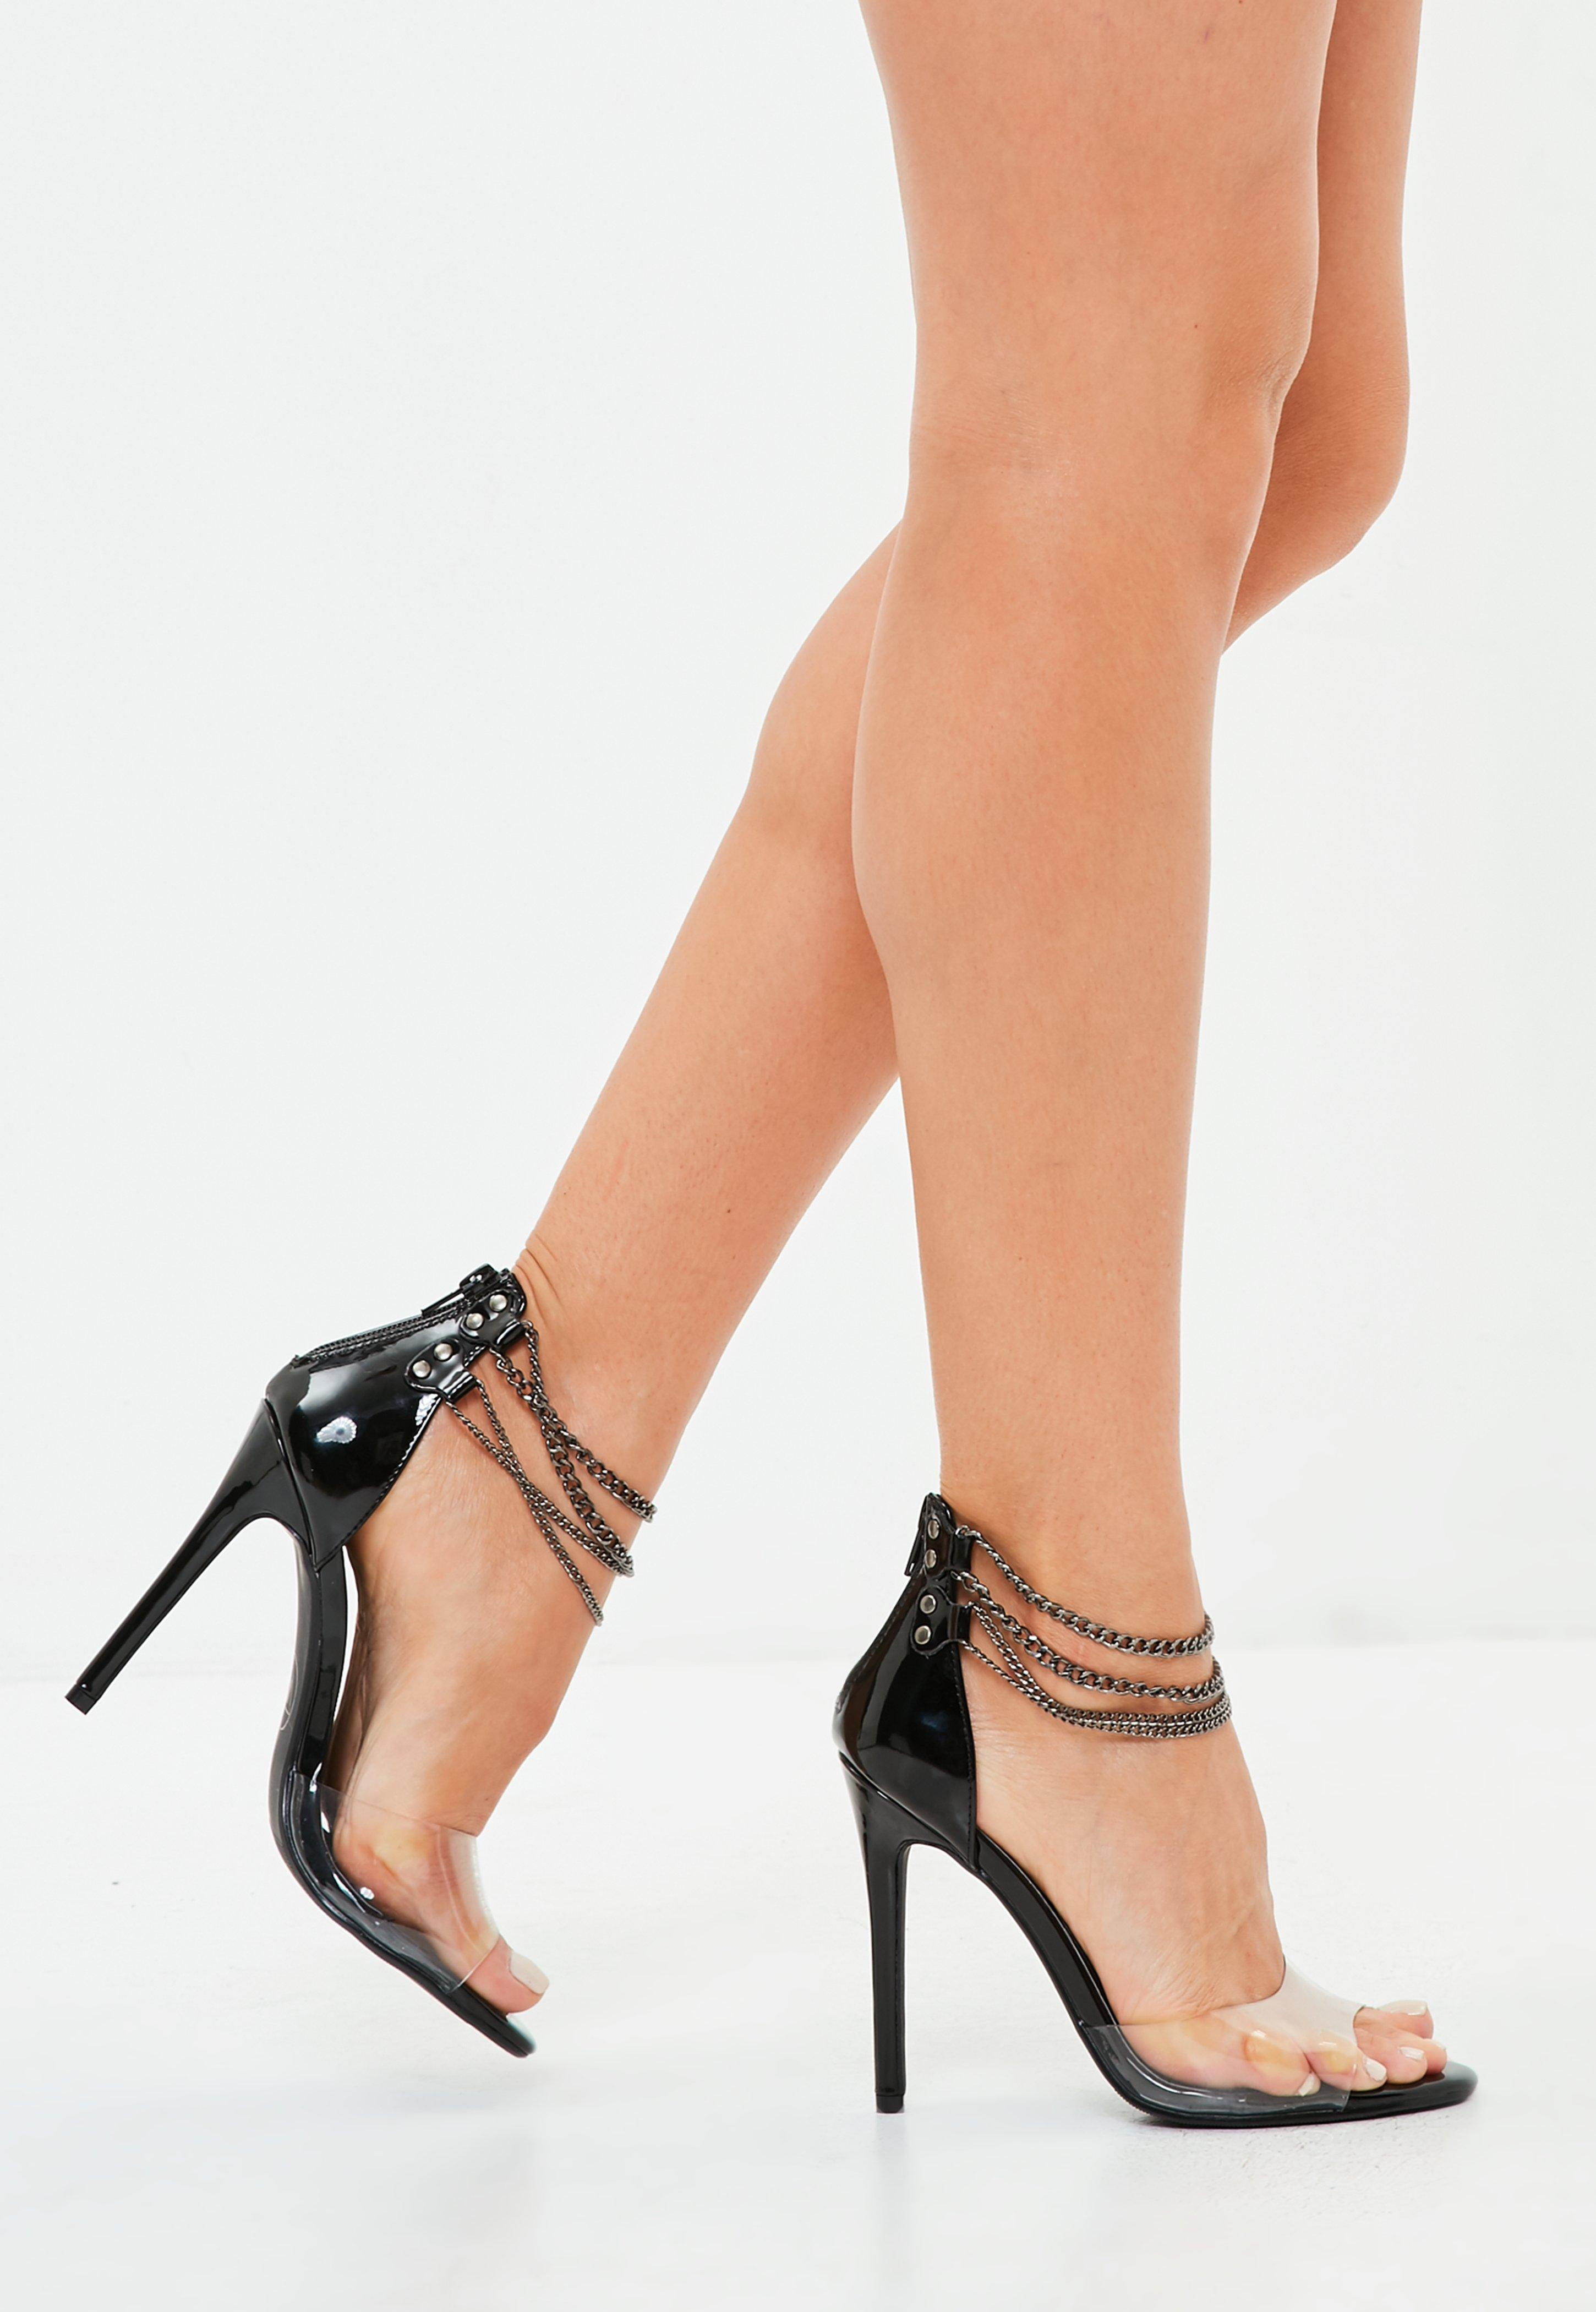 ee39ec49a7367a Lyst - Missguided Black Perspex Chain Barely There Heel in Black